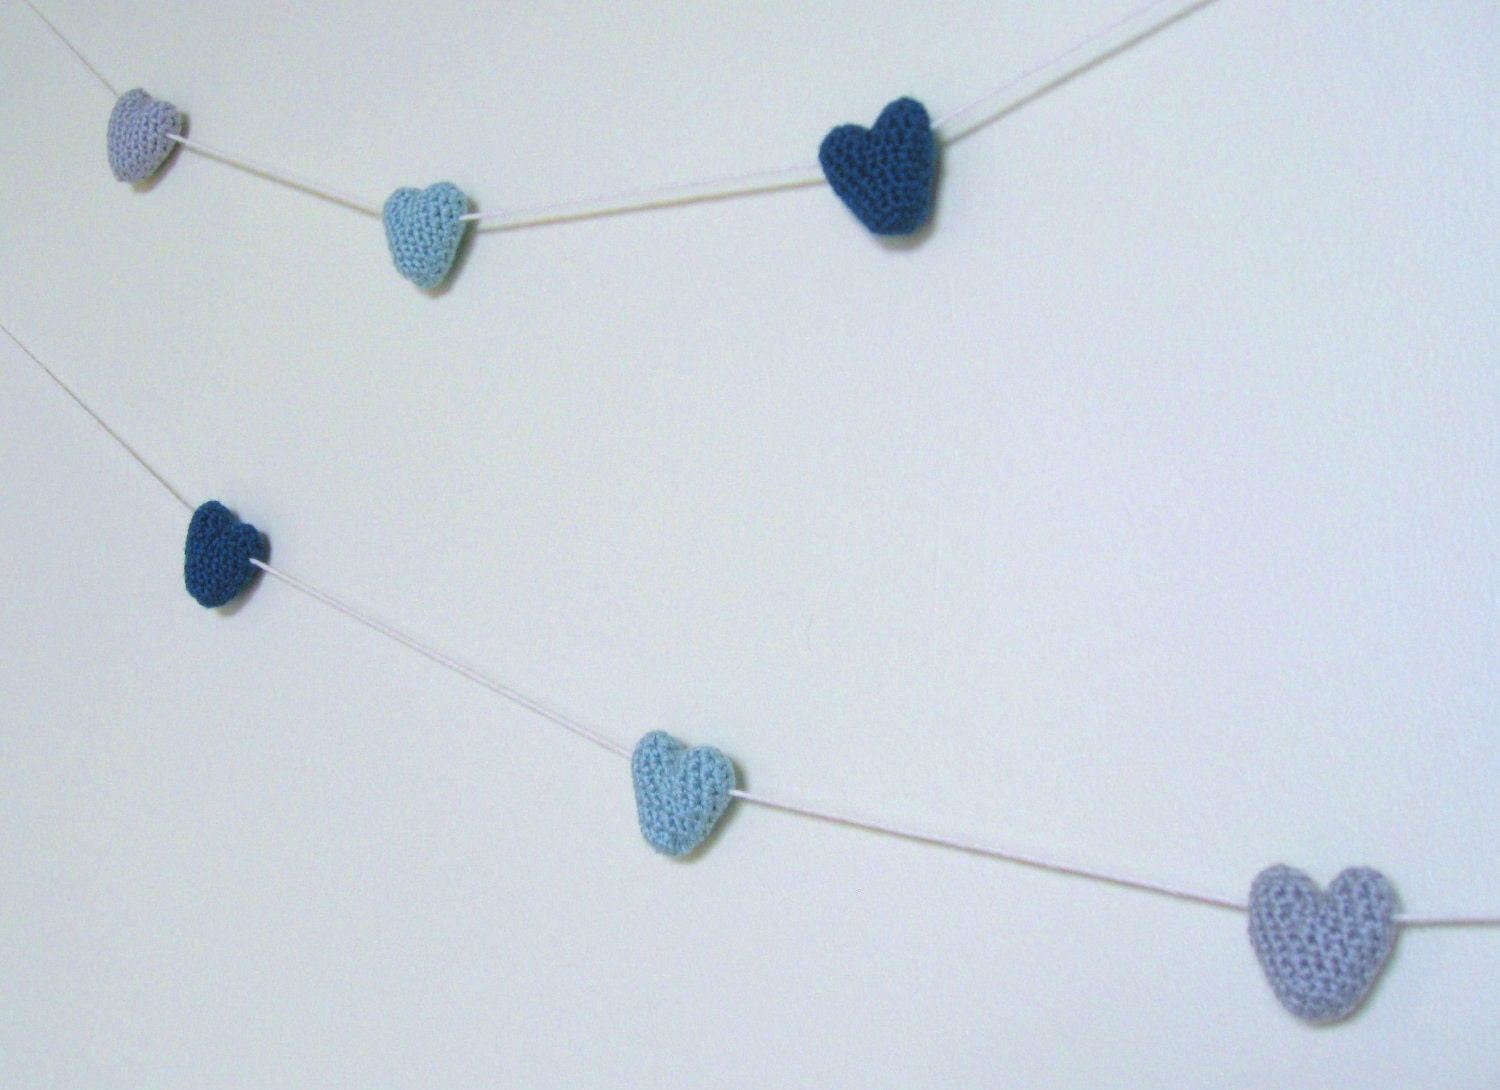 Wedding Garland - Hearts - Crochet Handmade - Decoration / Photo Prop - Merino Blend - Blue & Gray - 6 Hearts - meganEsass